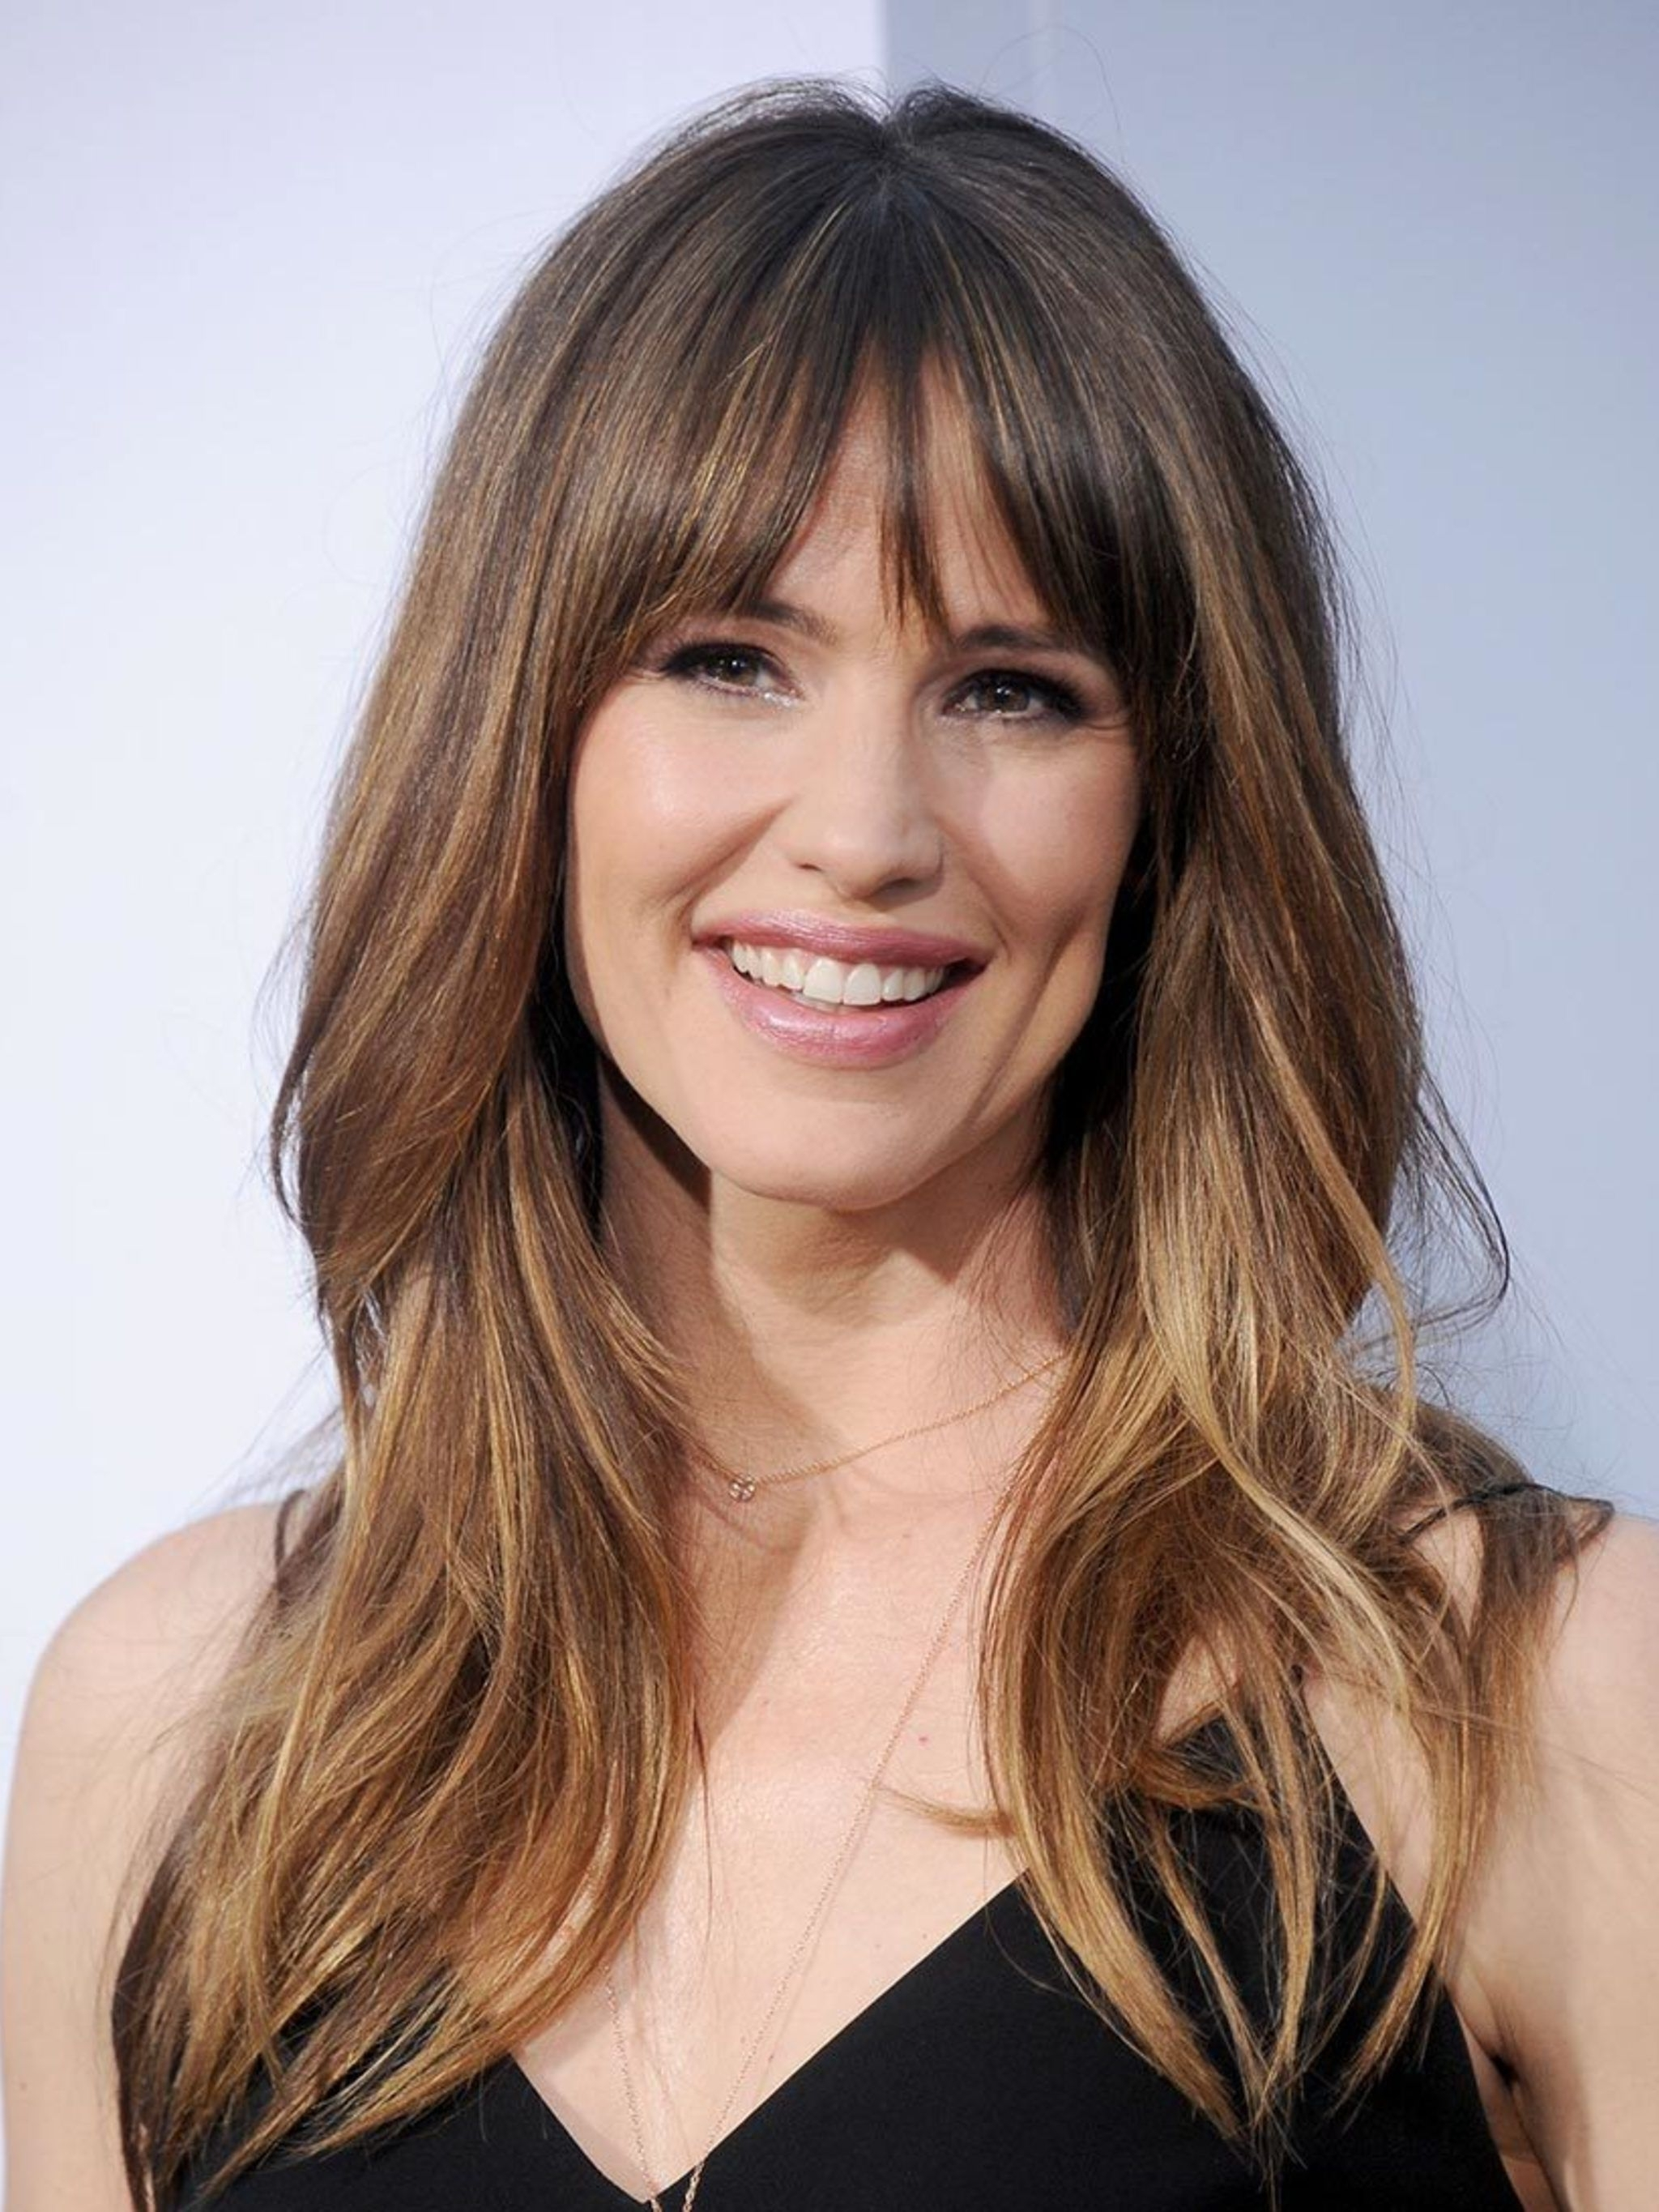 Best Fringe Hairstyles For 2018 – How To Pull Off A Fringe Haircut Pertaining To Famous Cropped Tousled Waves And Side Bangs Hairstyles (View 2 of 20)